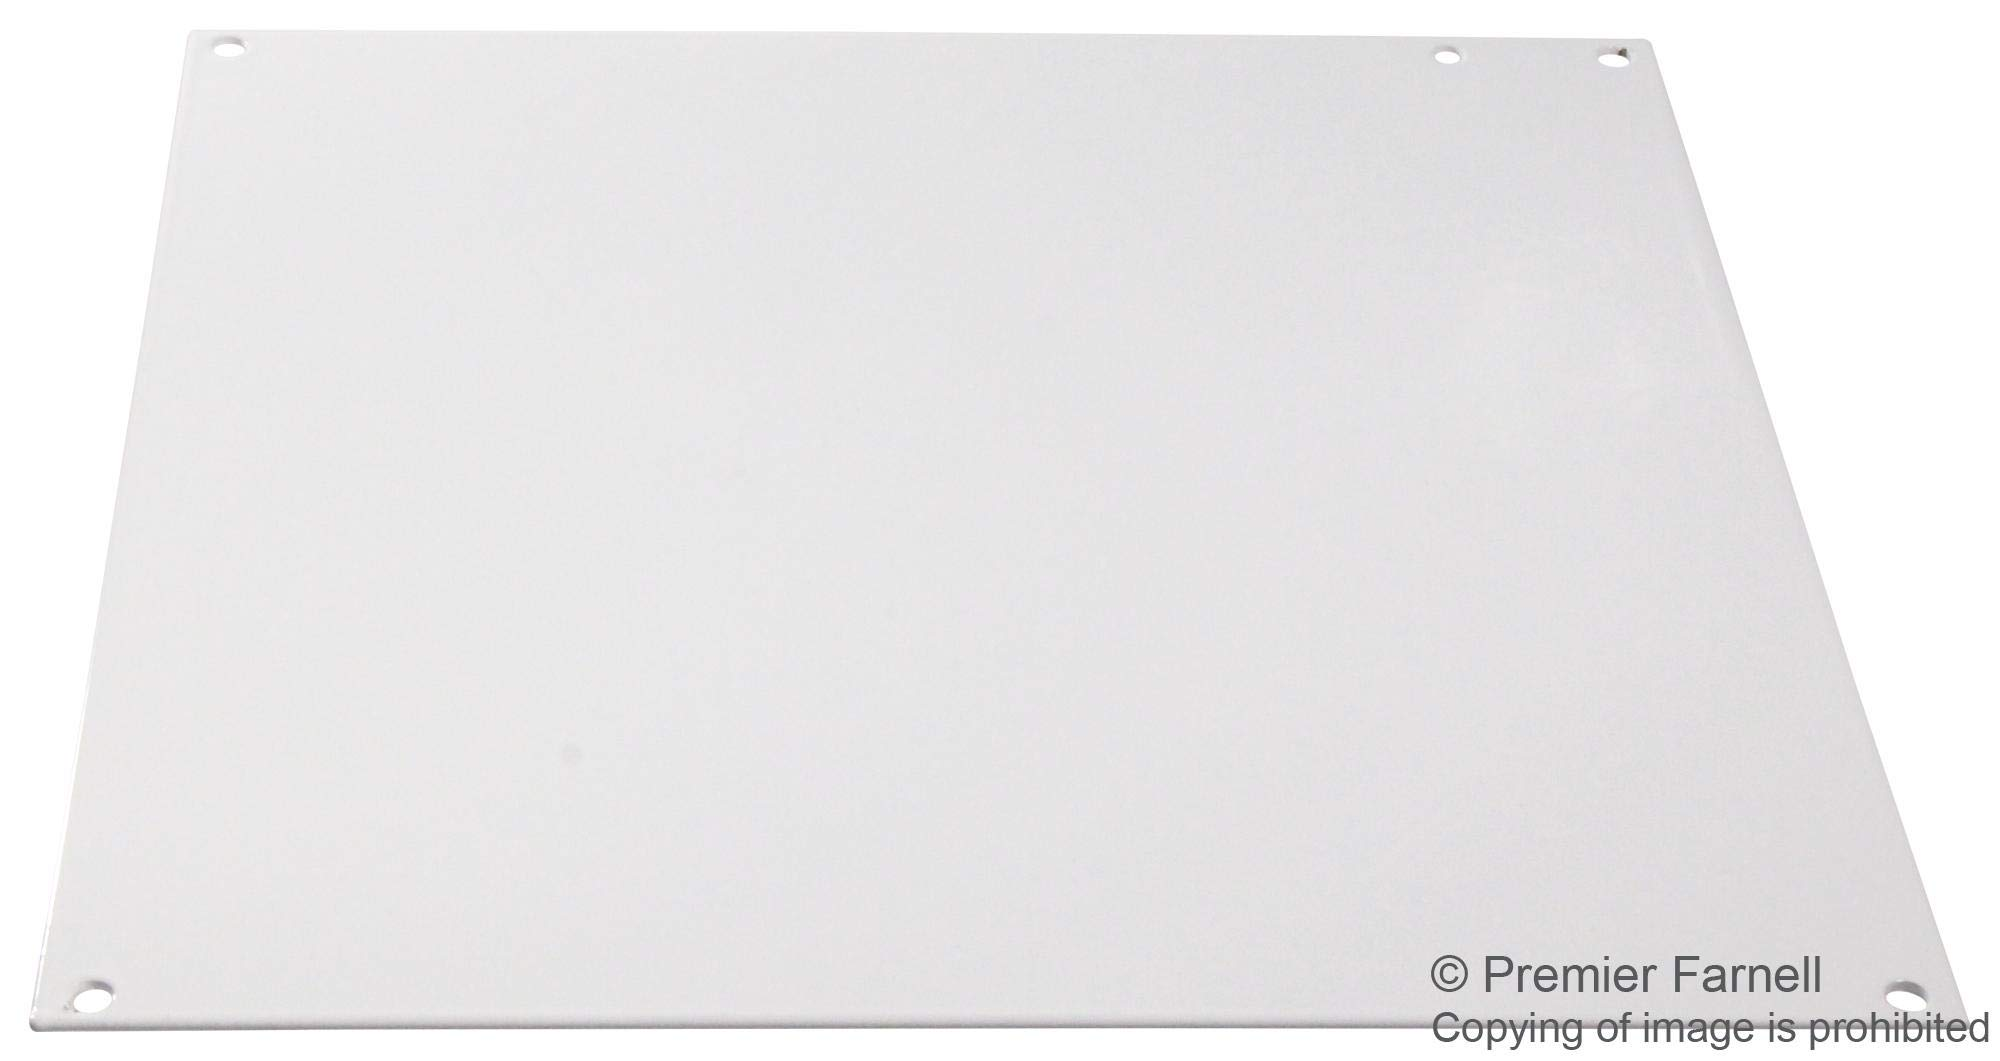 A12P12 - Panel, 14 Gauge, Steel, White, Junction Boxes, 273 mm, 276 mm (Pack of 2) (A12P12)